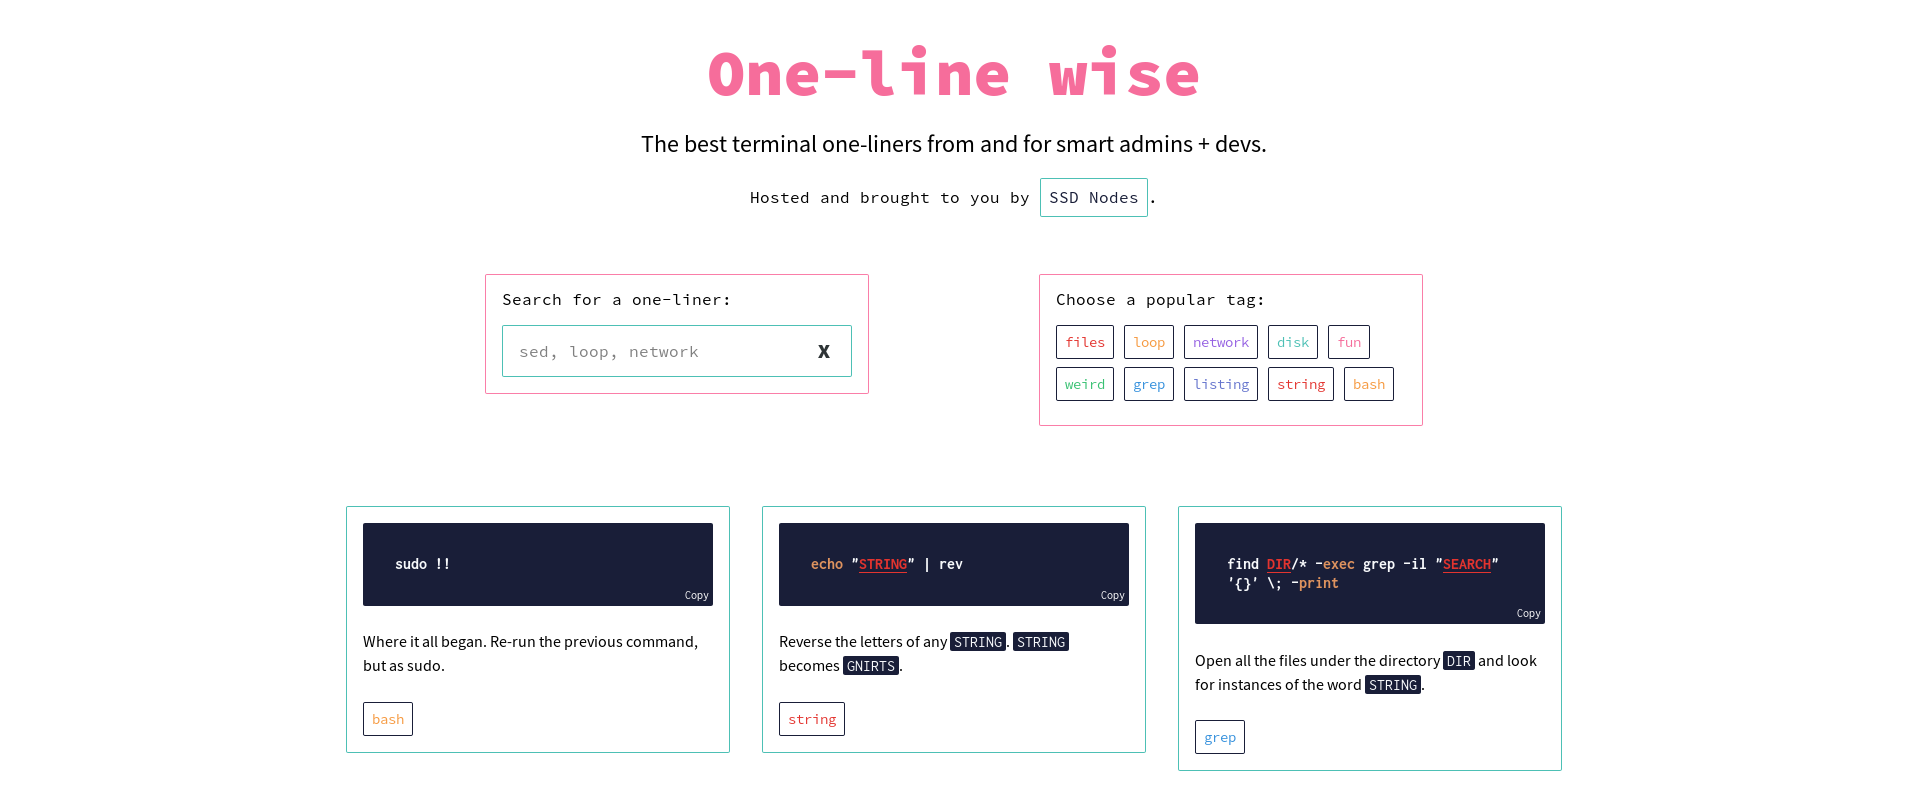 One-line wise: one-liners from and for smart devs and admins